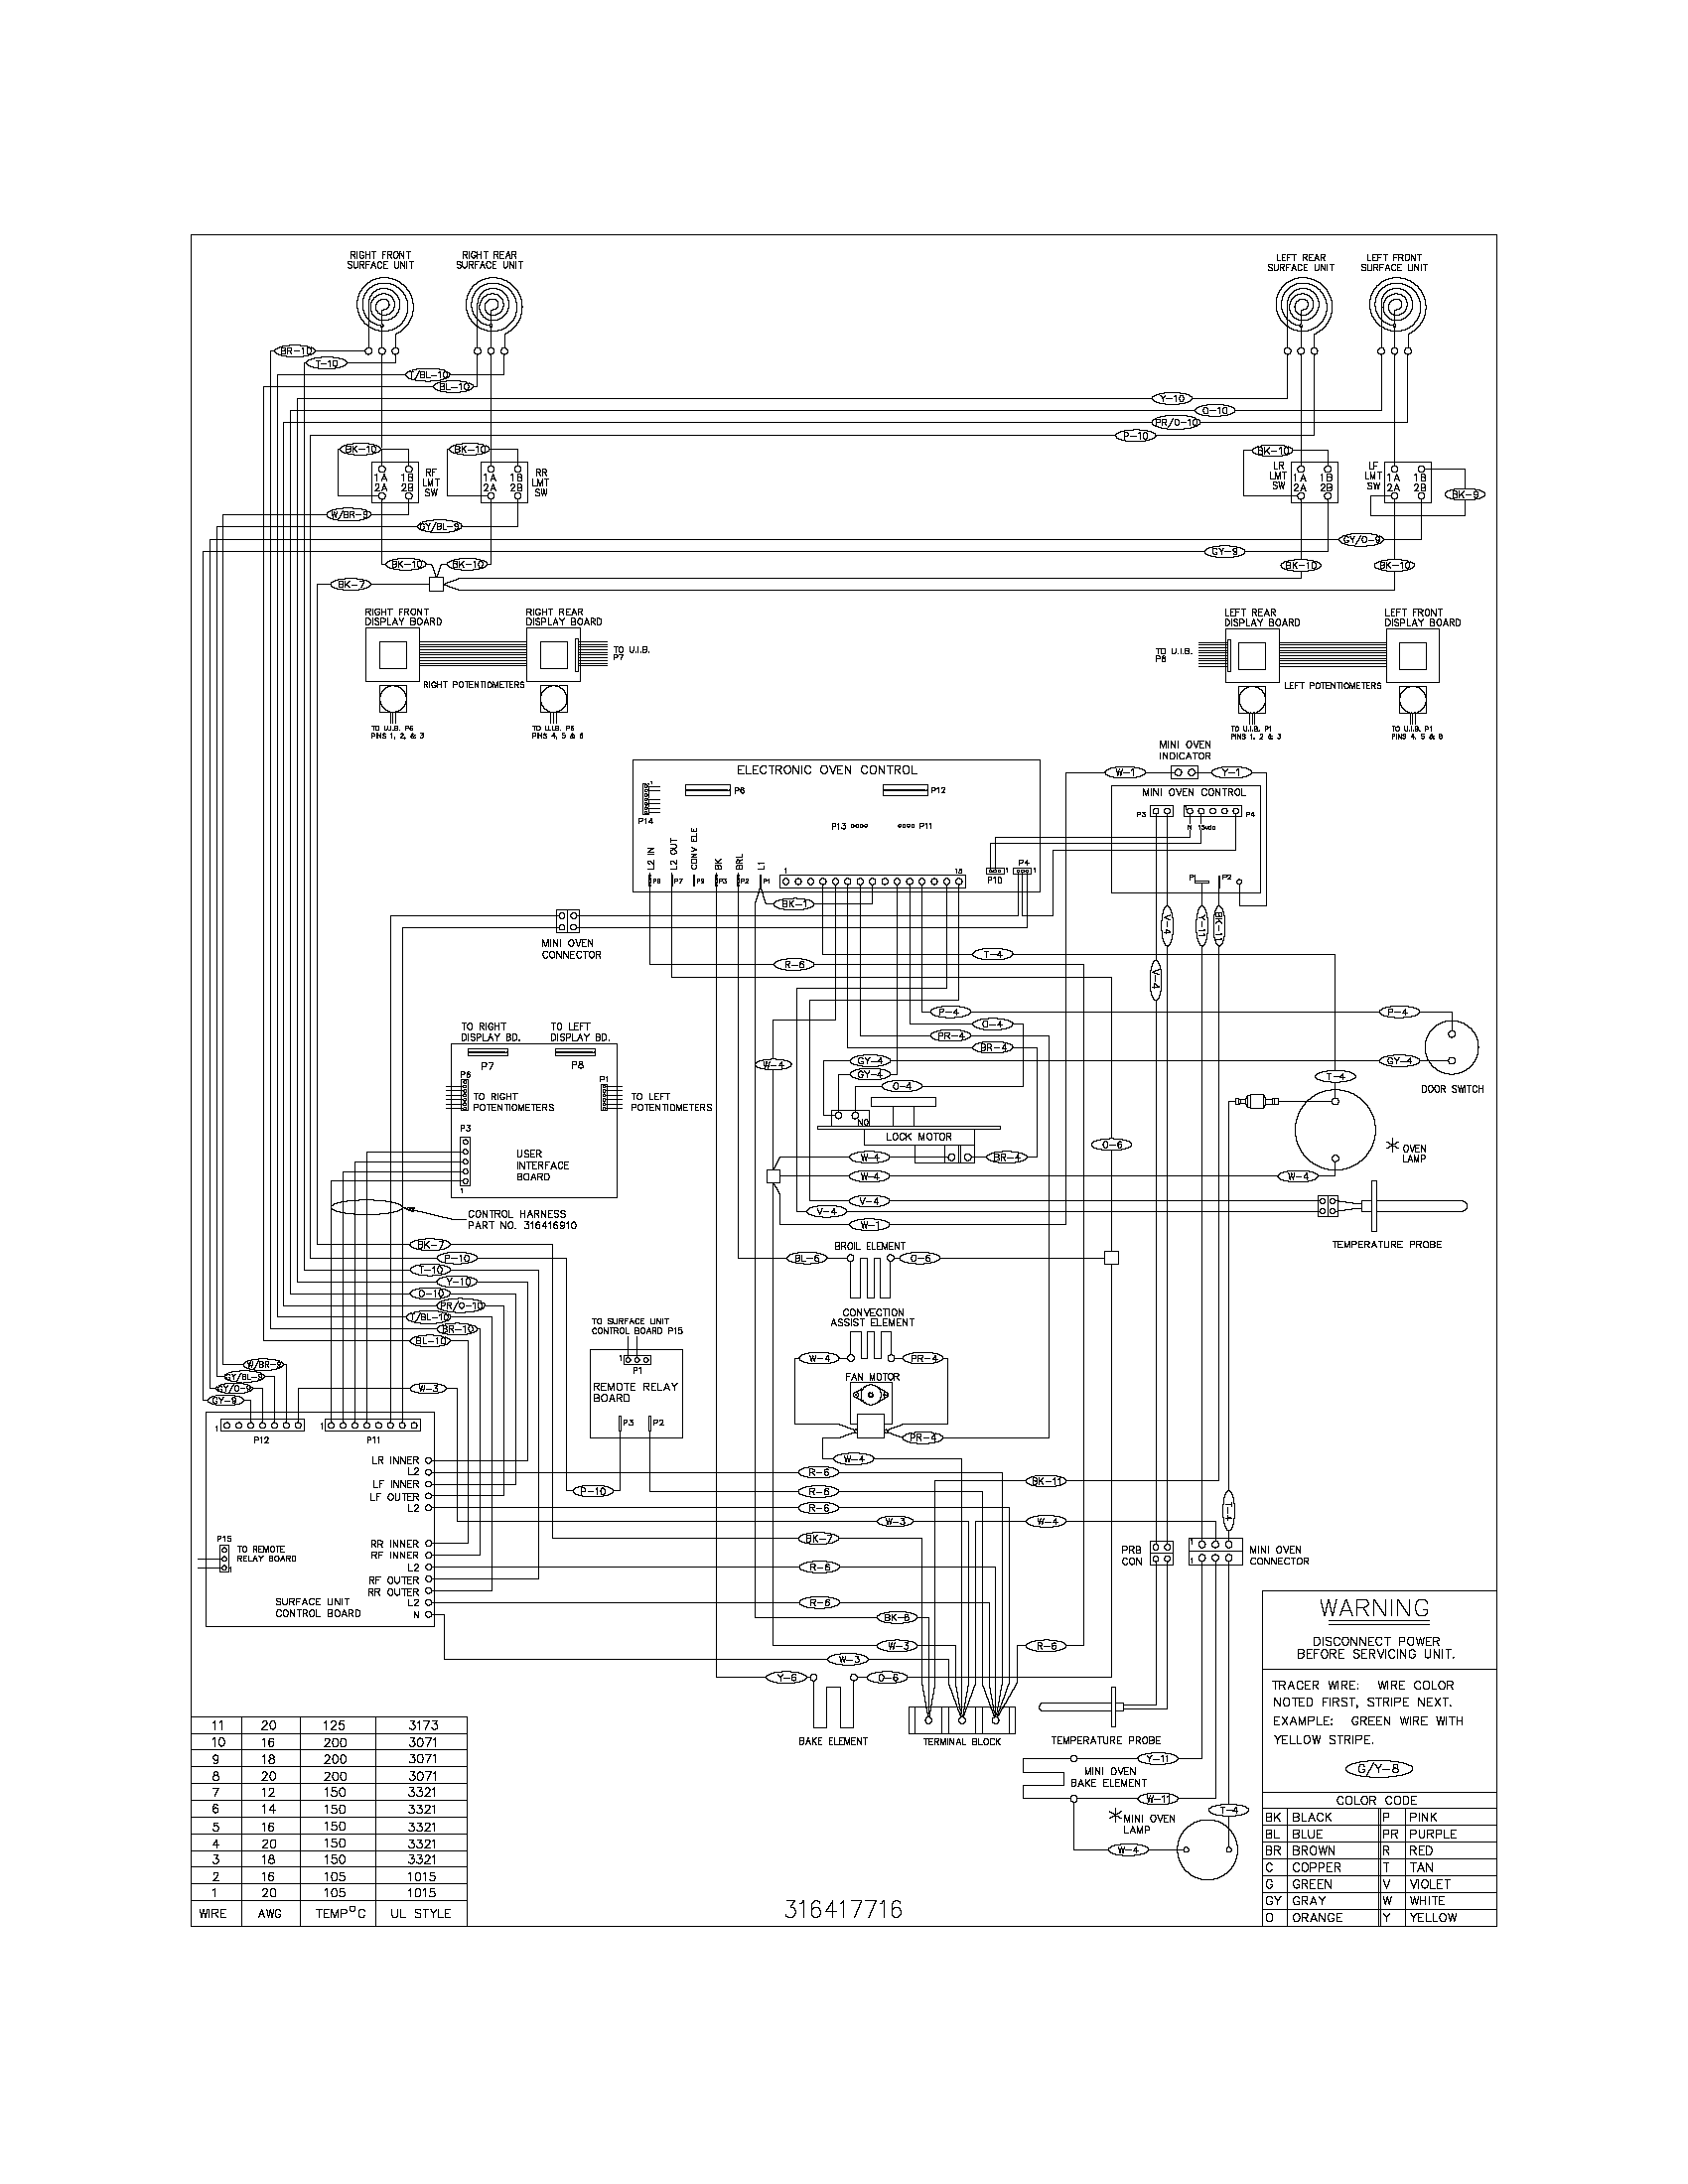 Wiring Diagram Freezerless Refrigerator | New Wiring ... on